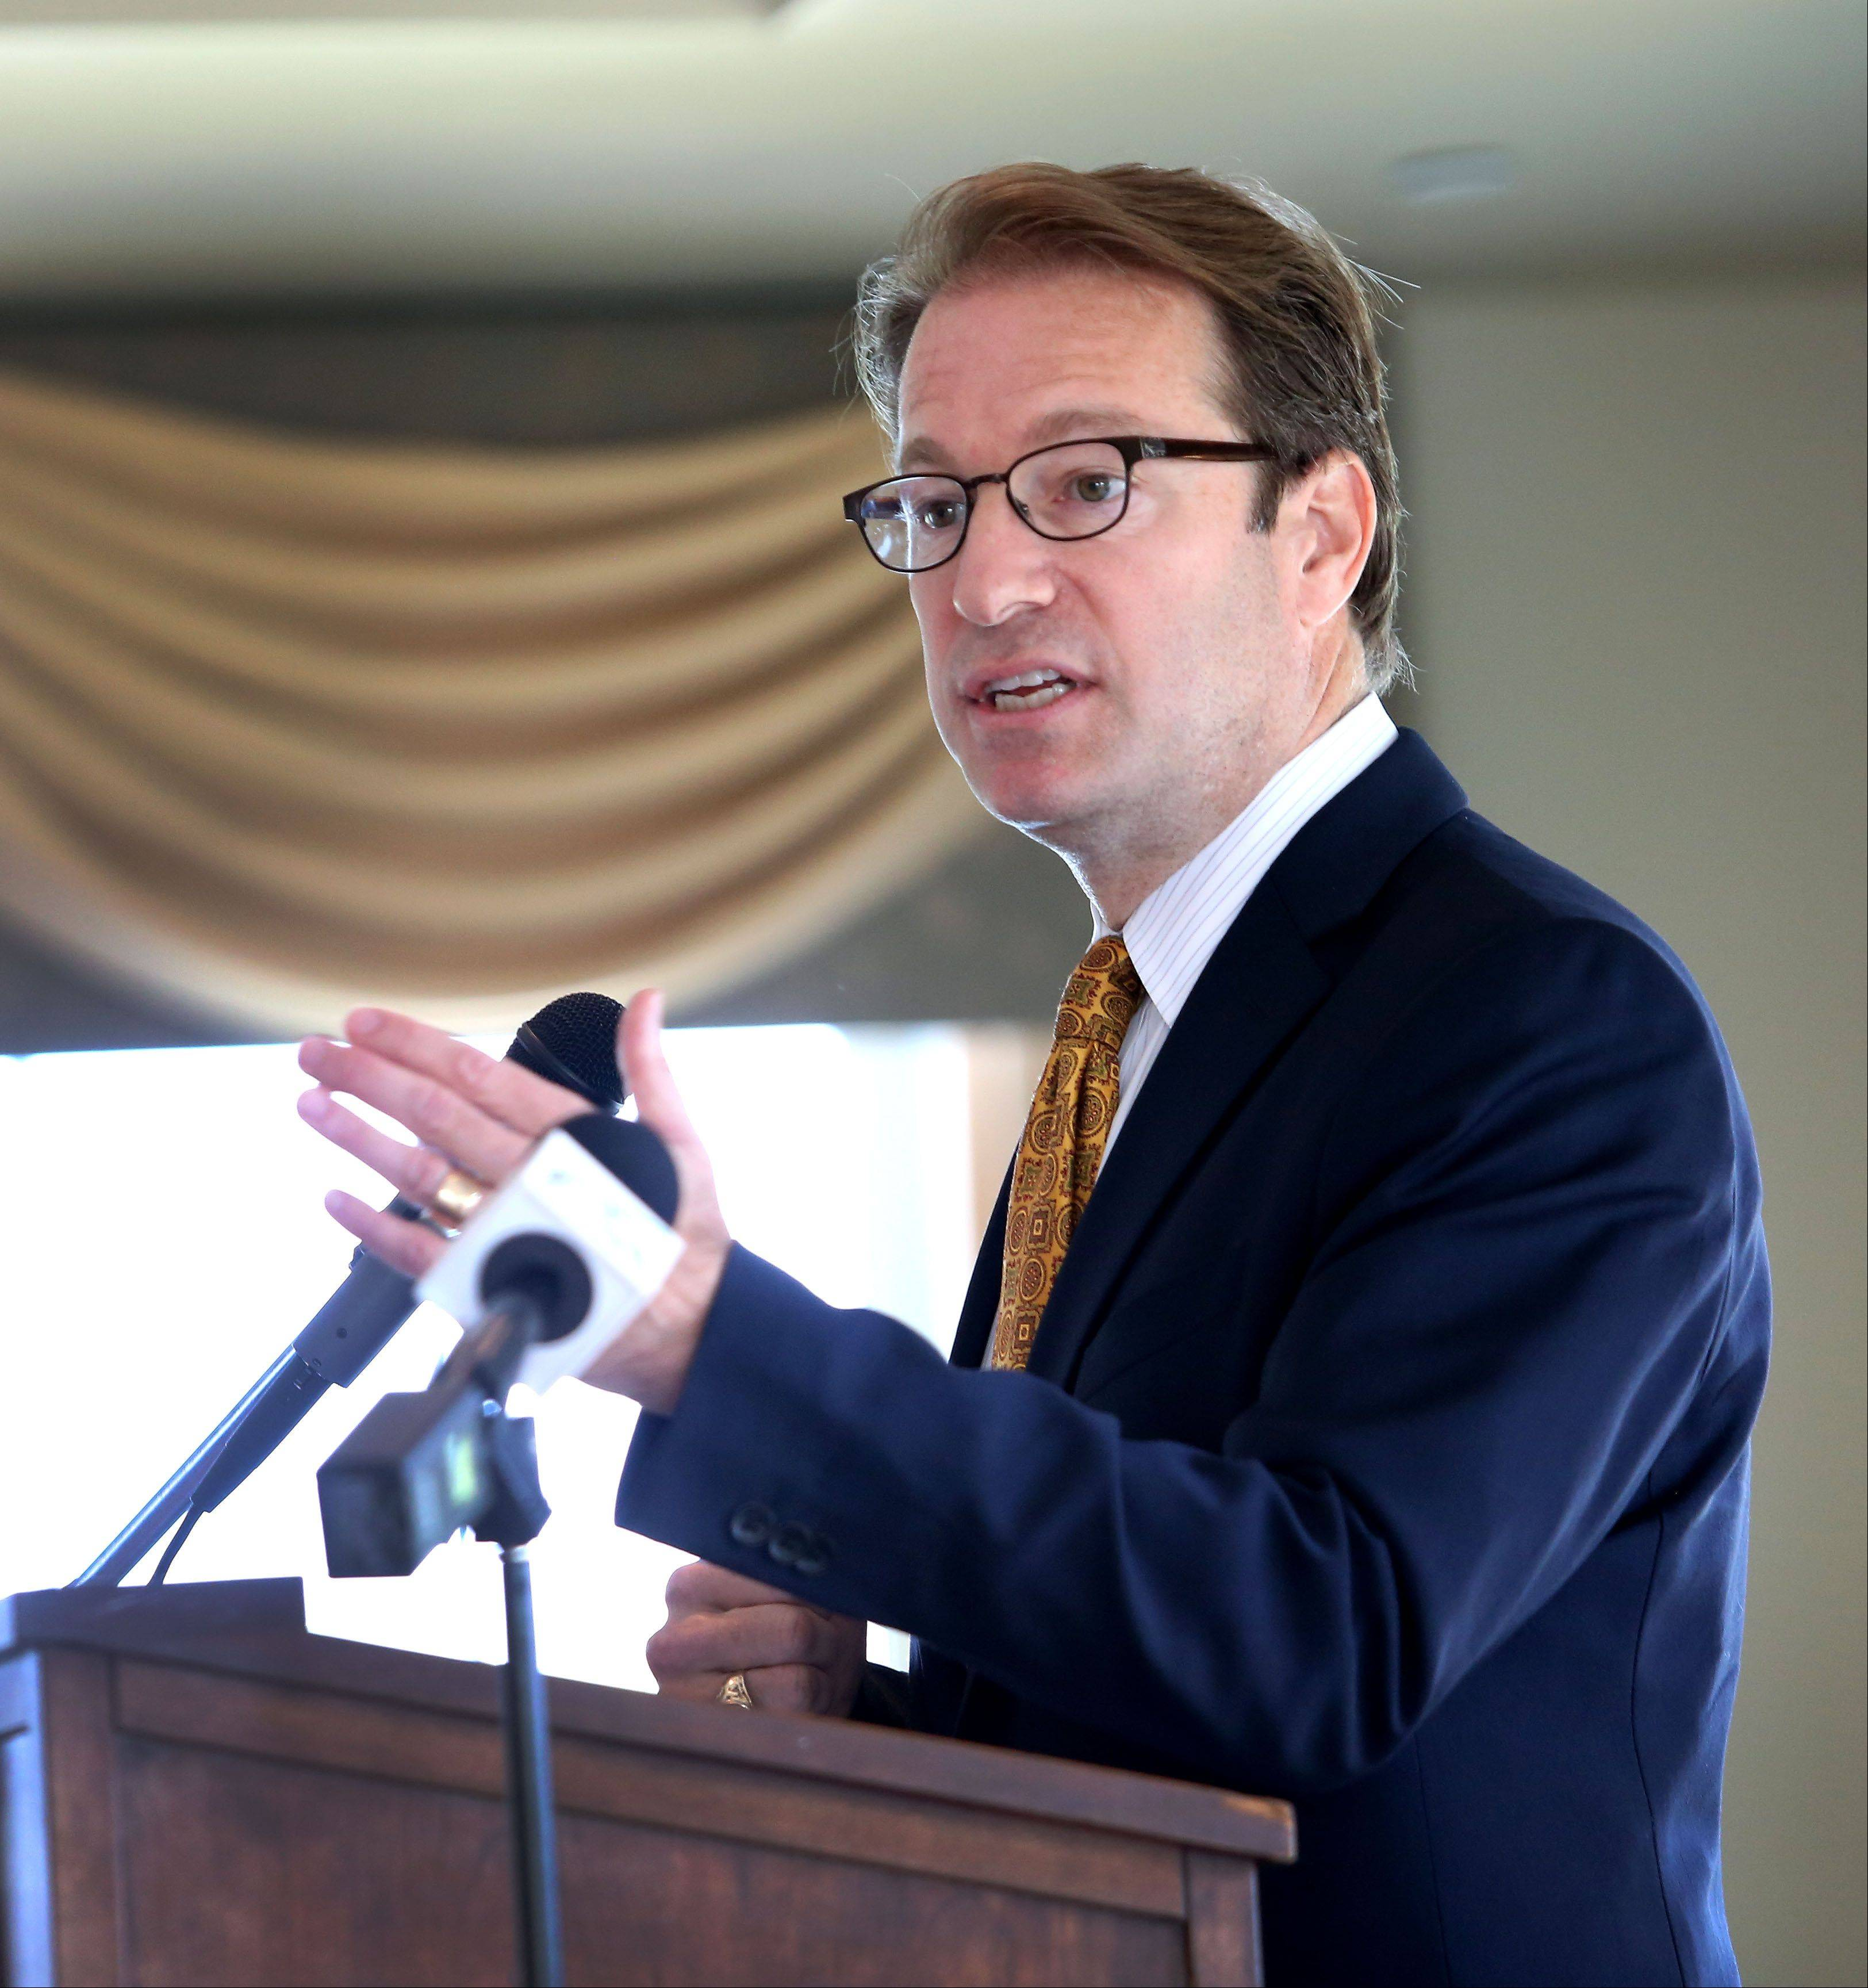 U.S. Rep Peter Roskam speaks at a Tax Reform Town Hall meeting at Cress Creek Country Club in Naperville.